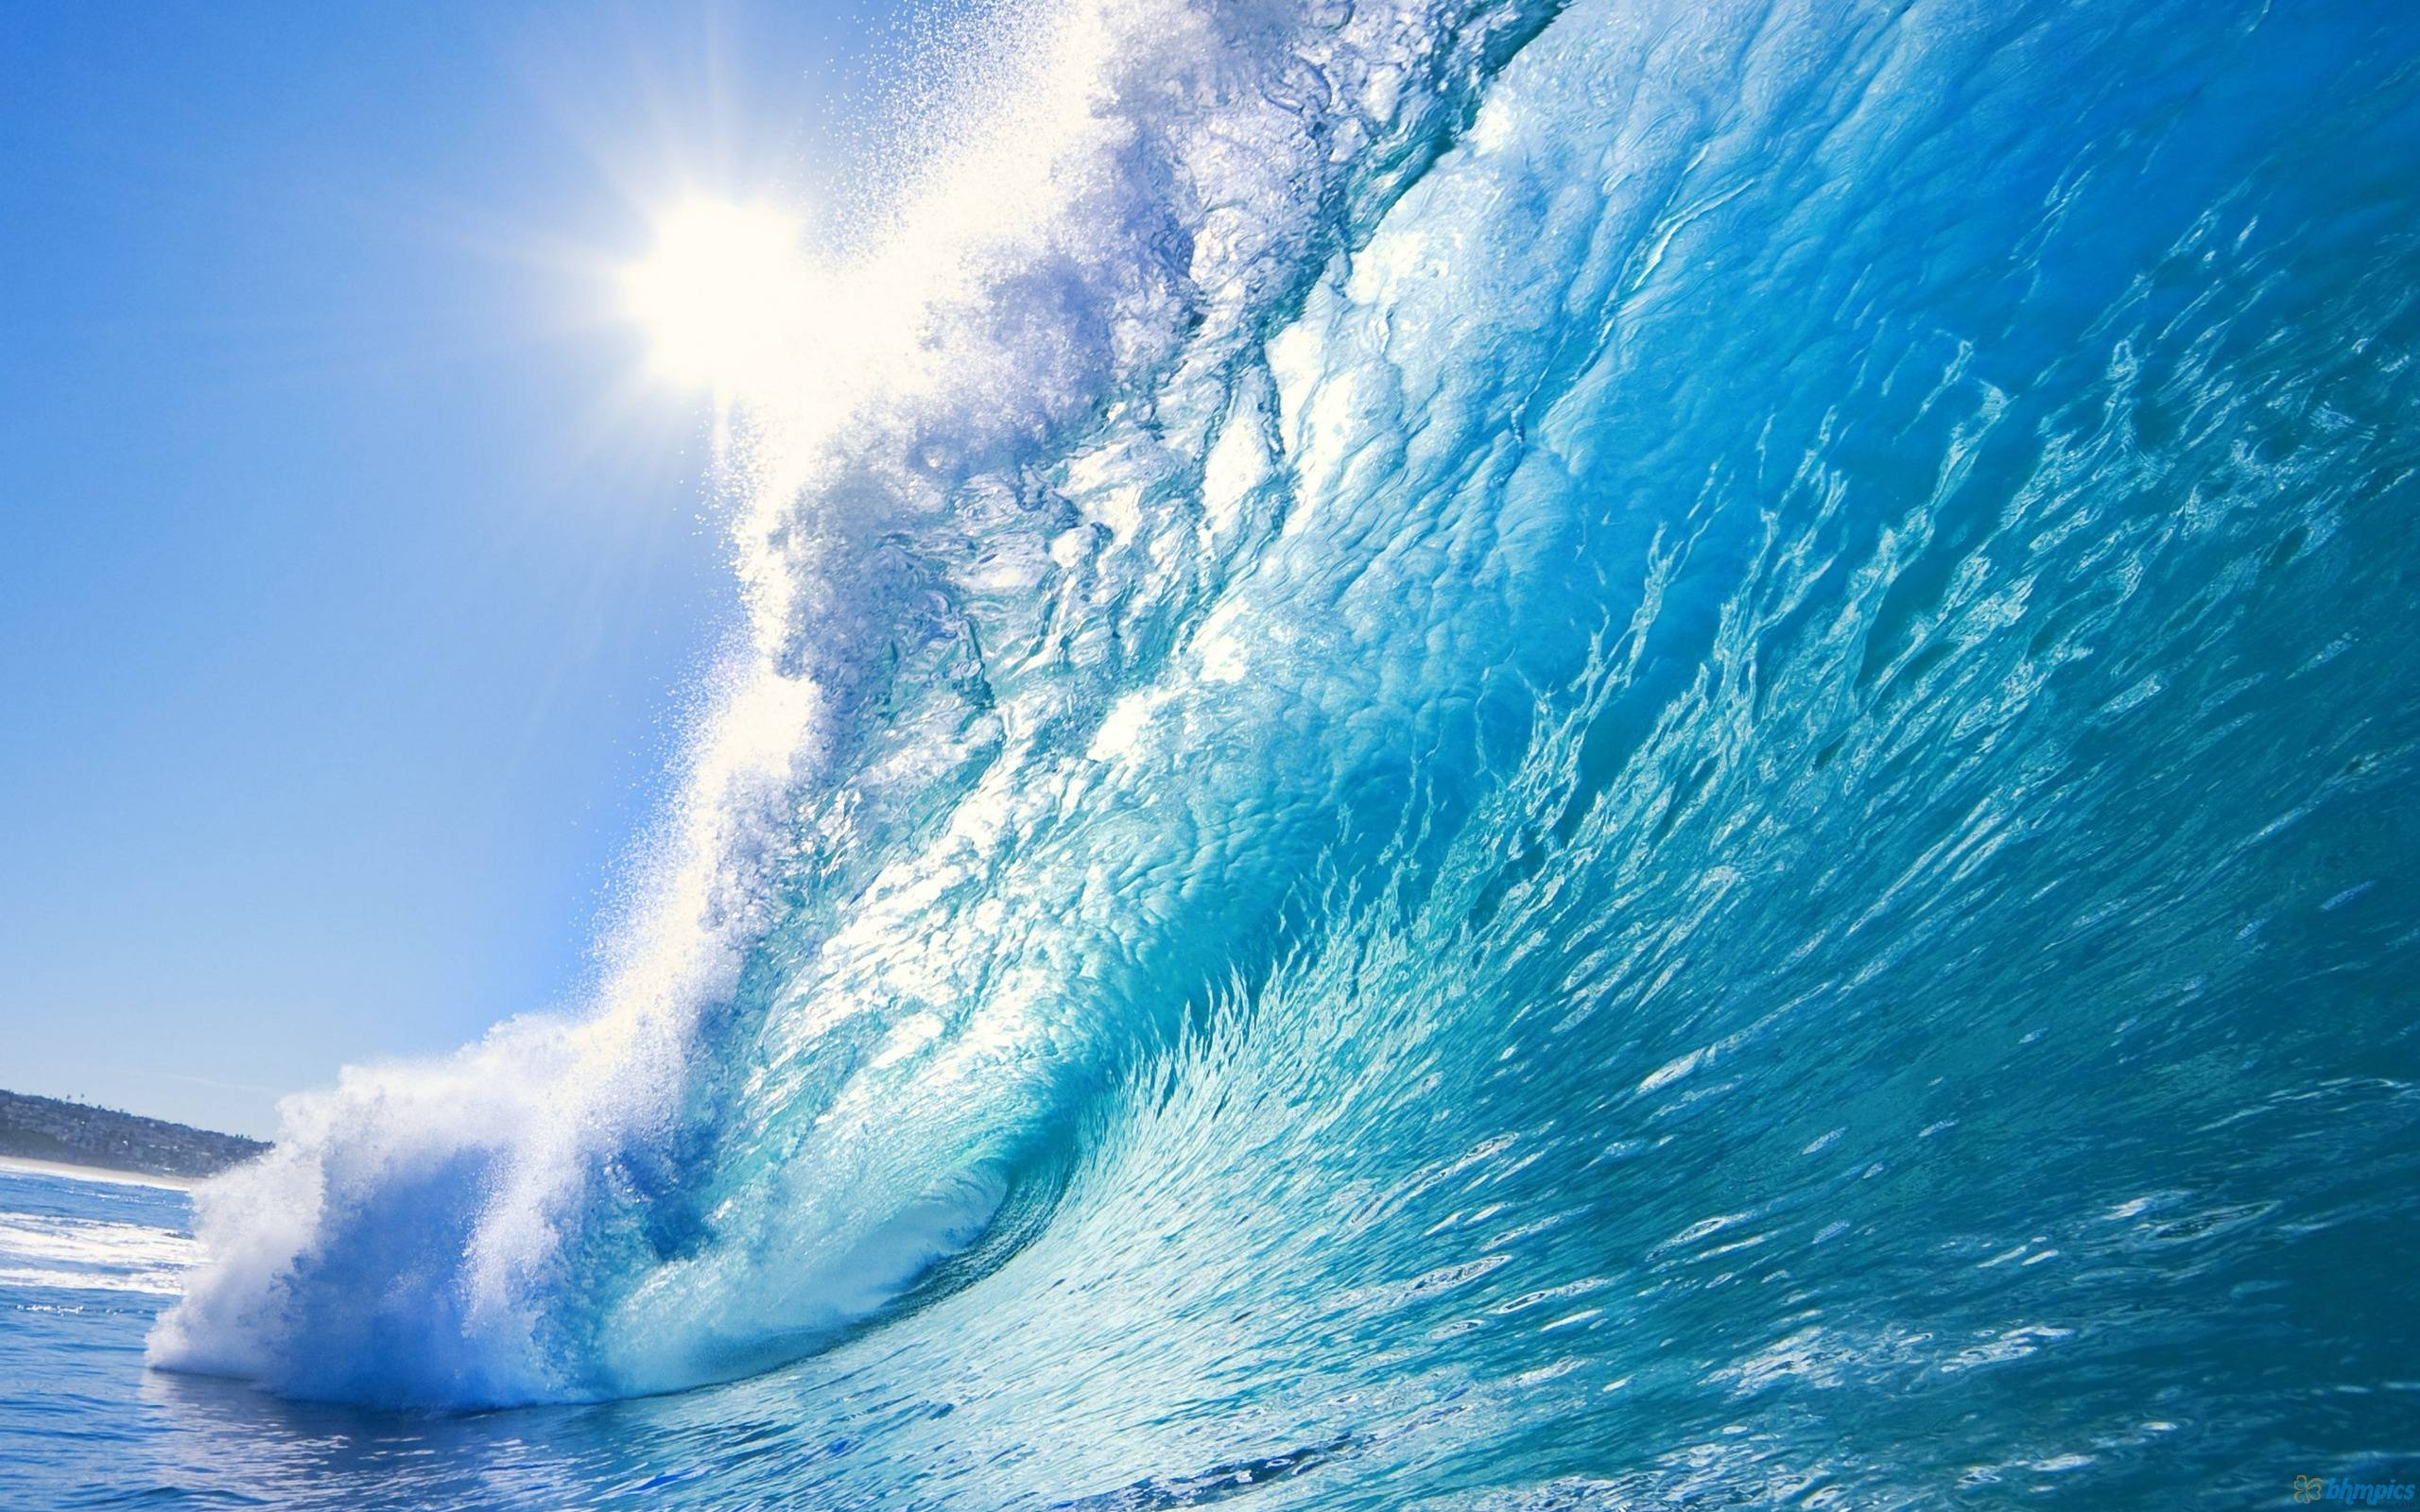 Awesome Wave Wallpaper